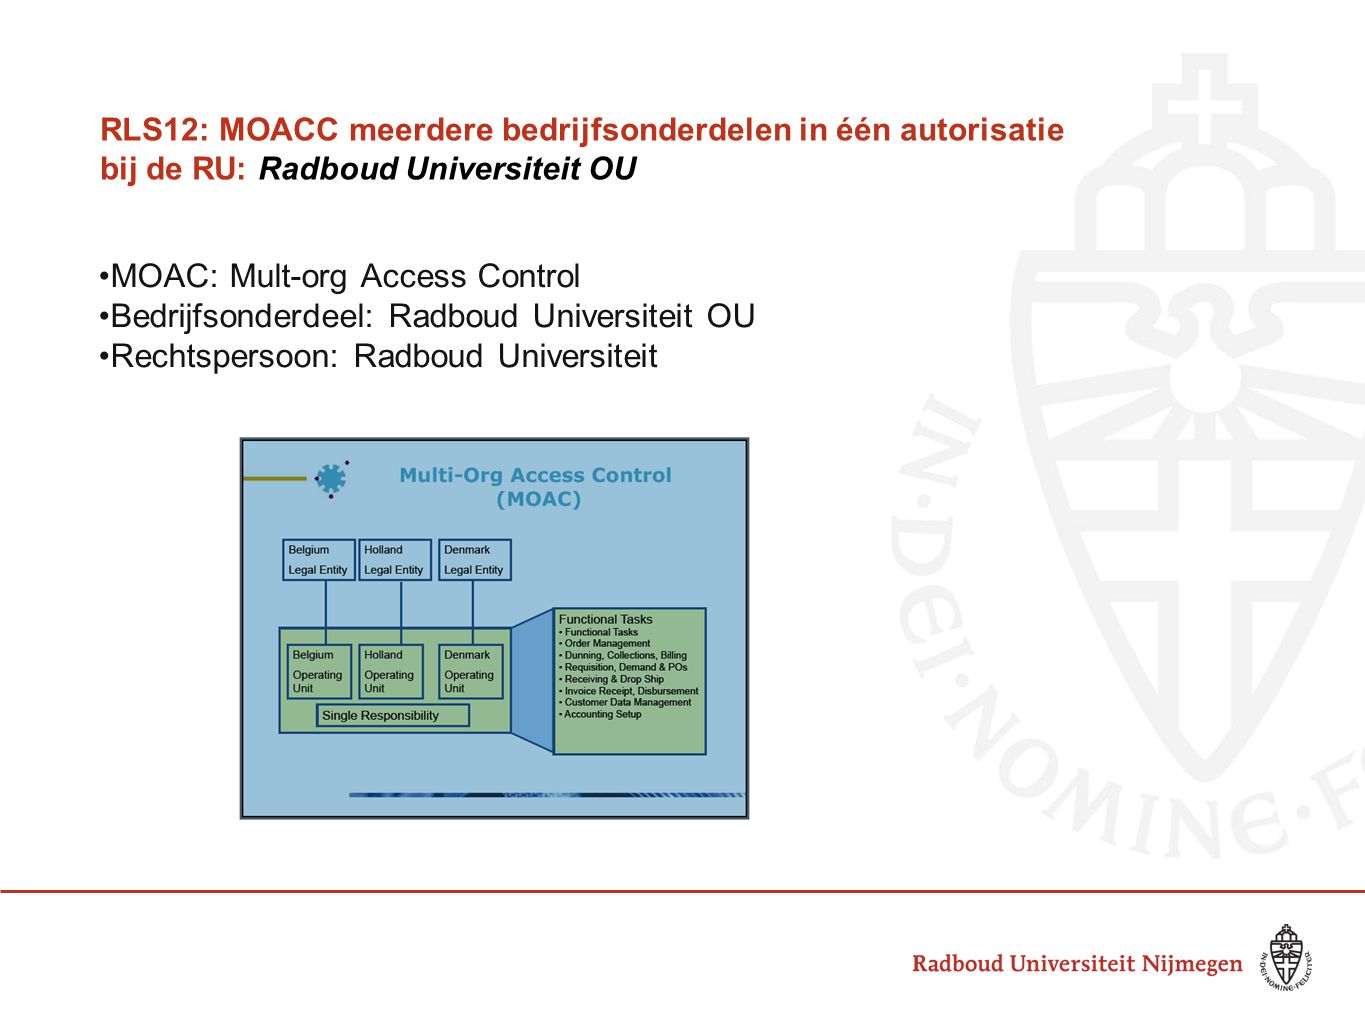 MOAC: Mult-org Access Control